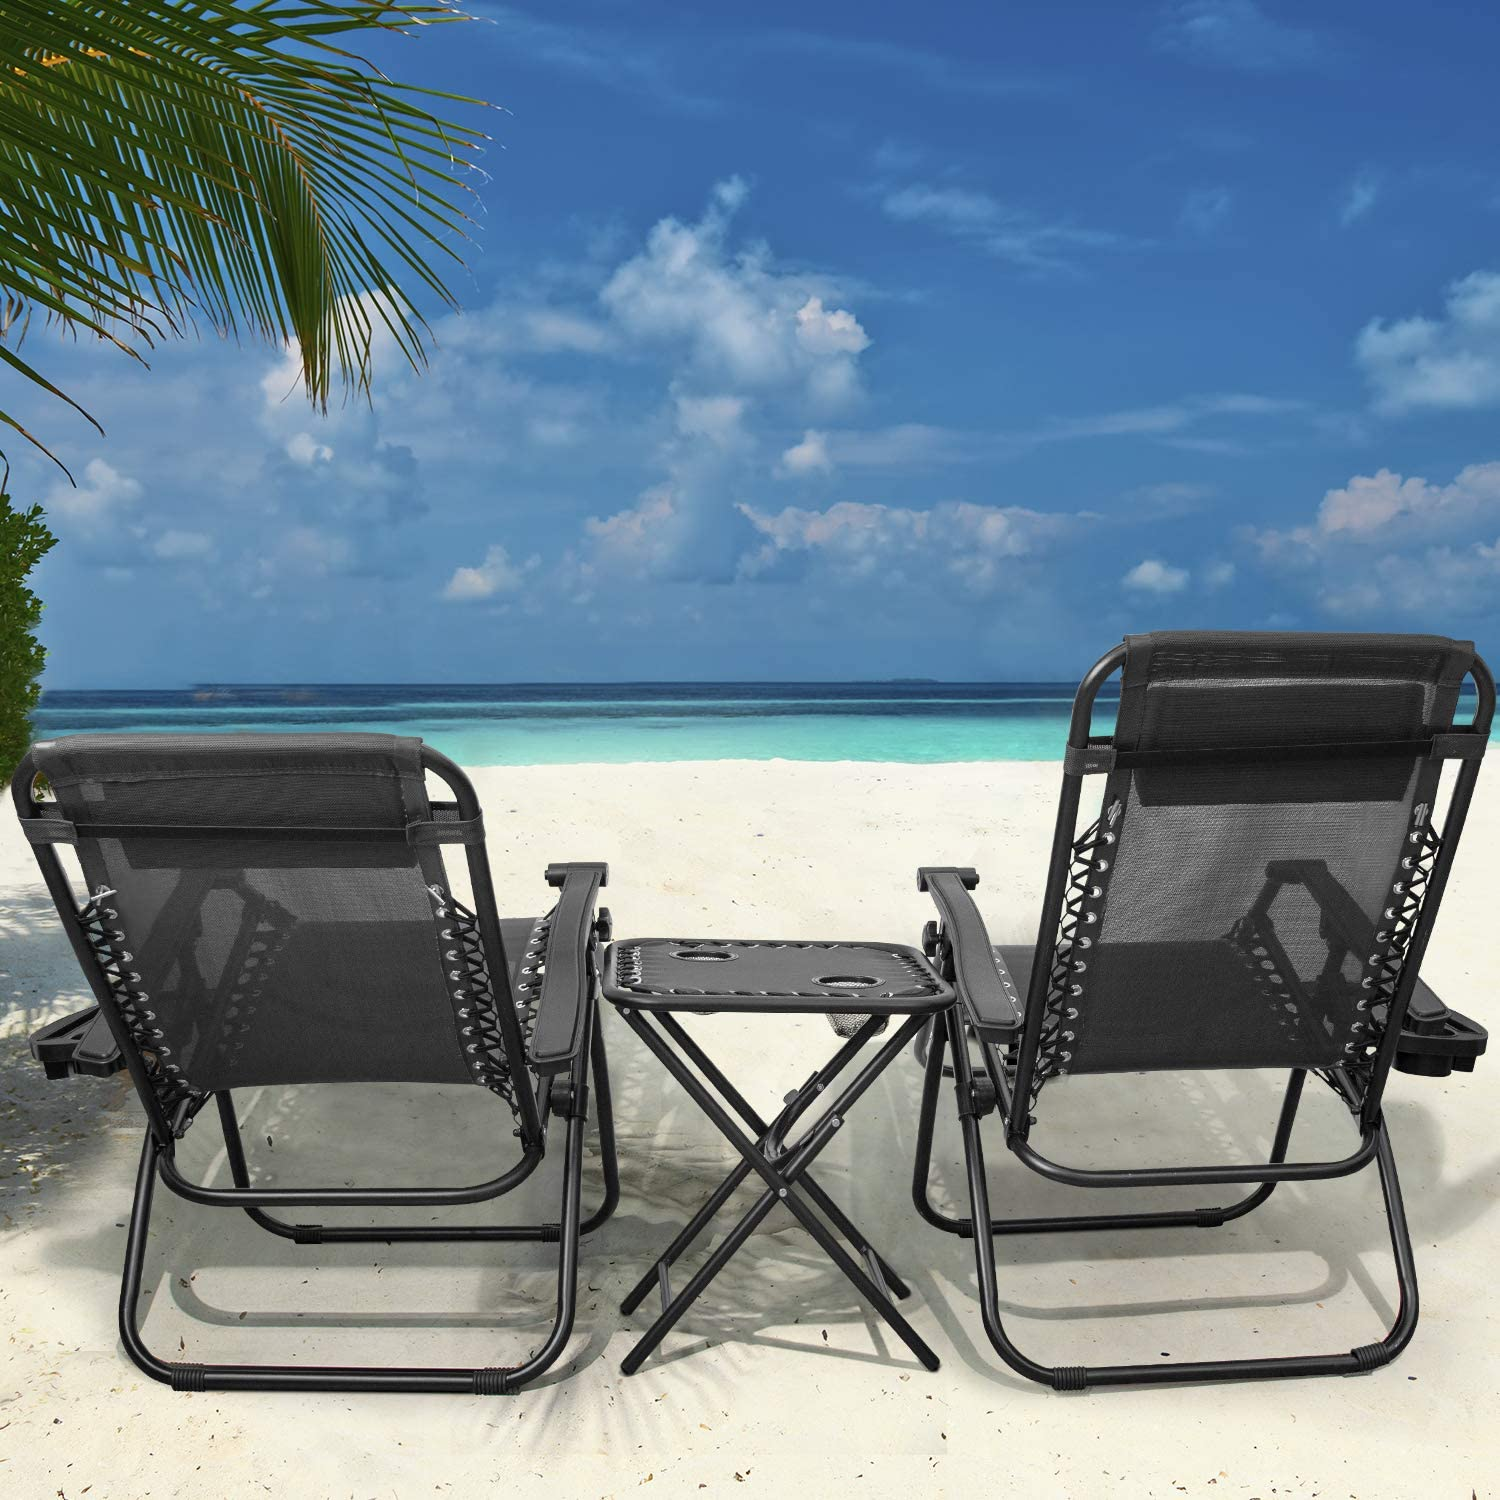 Yard and Camping Flamaker Zero Gravity Chairs Outdoor Folding Recliners Adjustable Lawn Patio Lounge Chair with Side Table and Cup Holders for Poolside Black